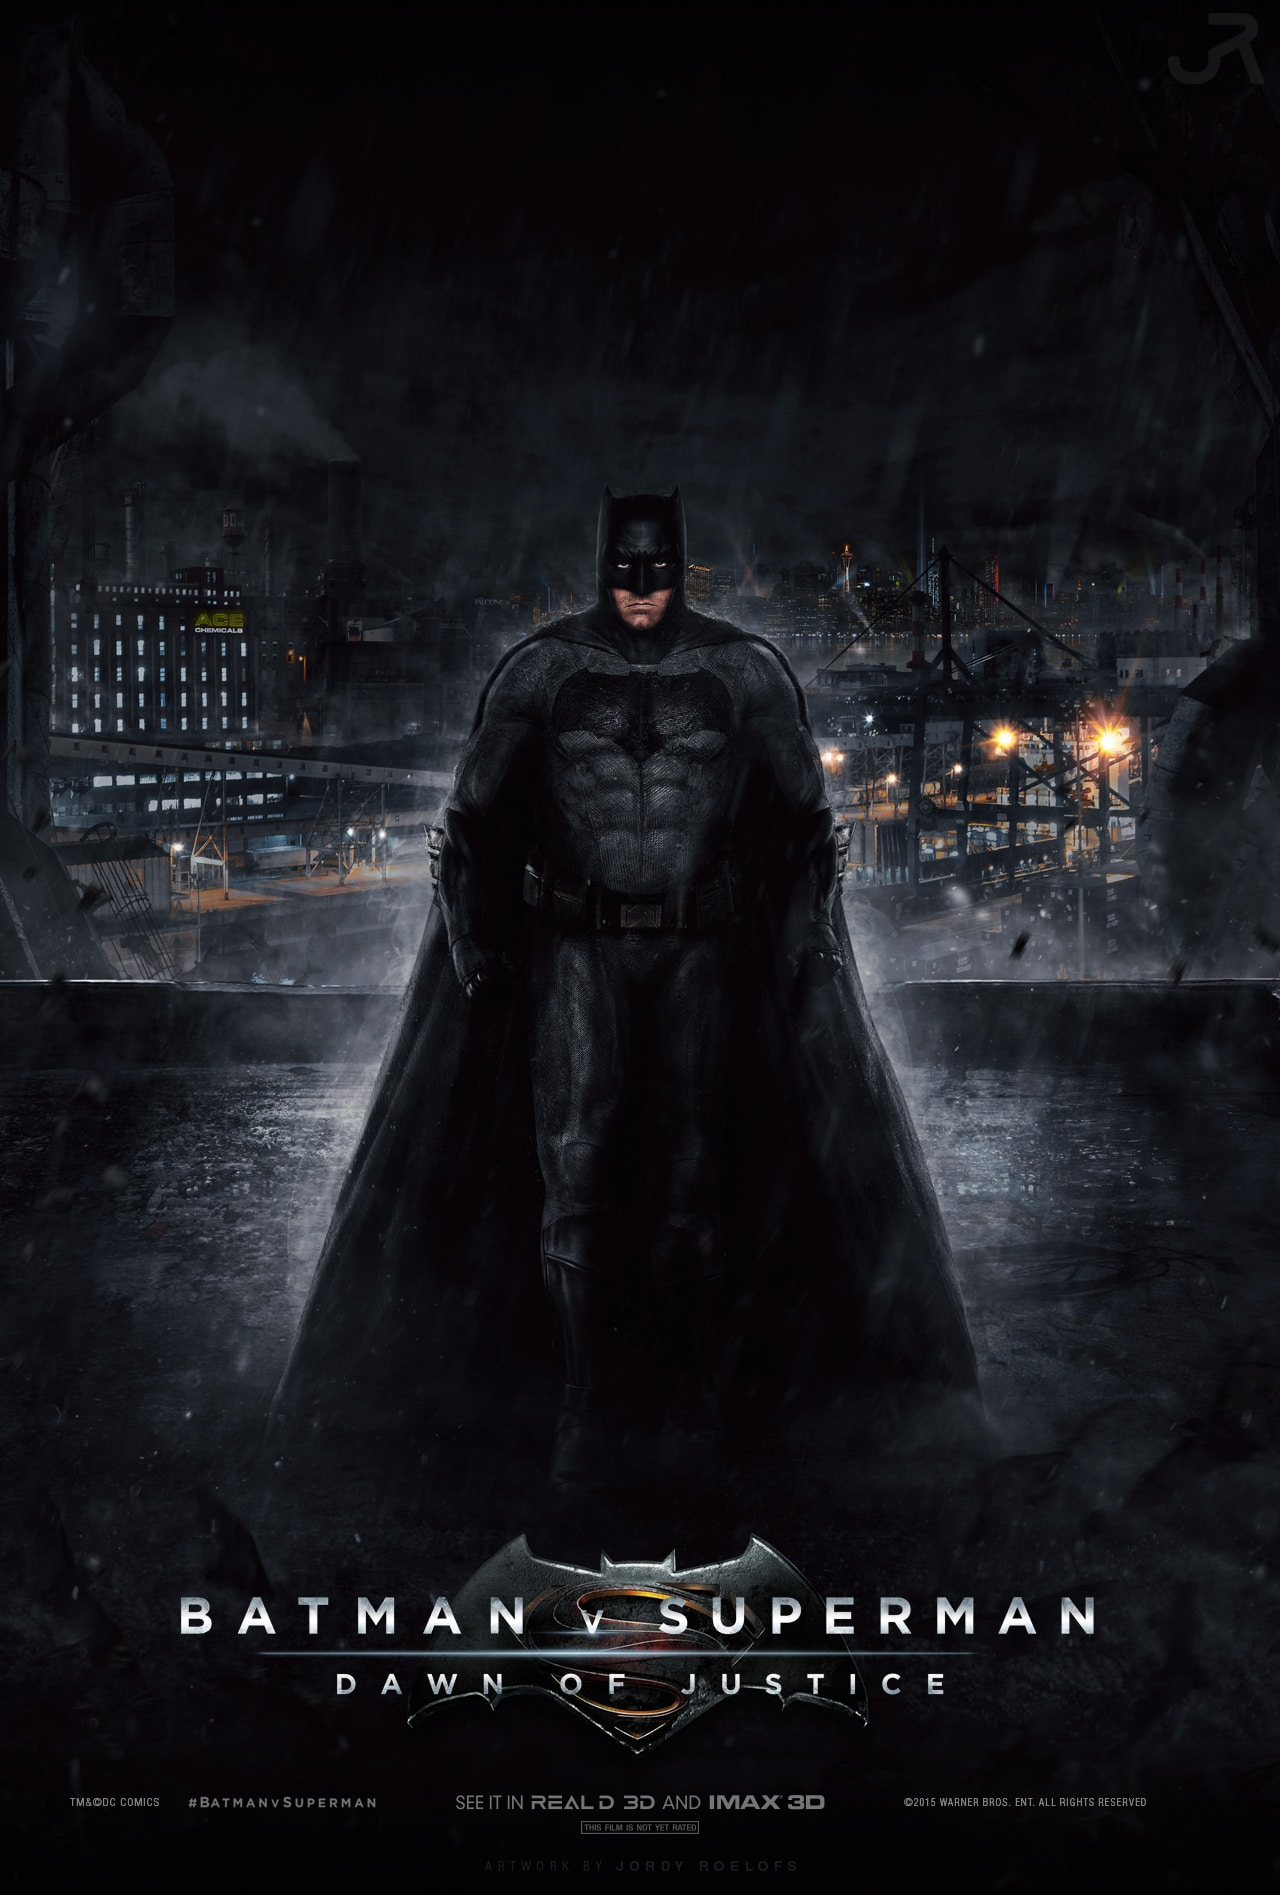 Batman-Vs-Superman-Posters-hd-printable-batman-individual-alone-dark